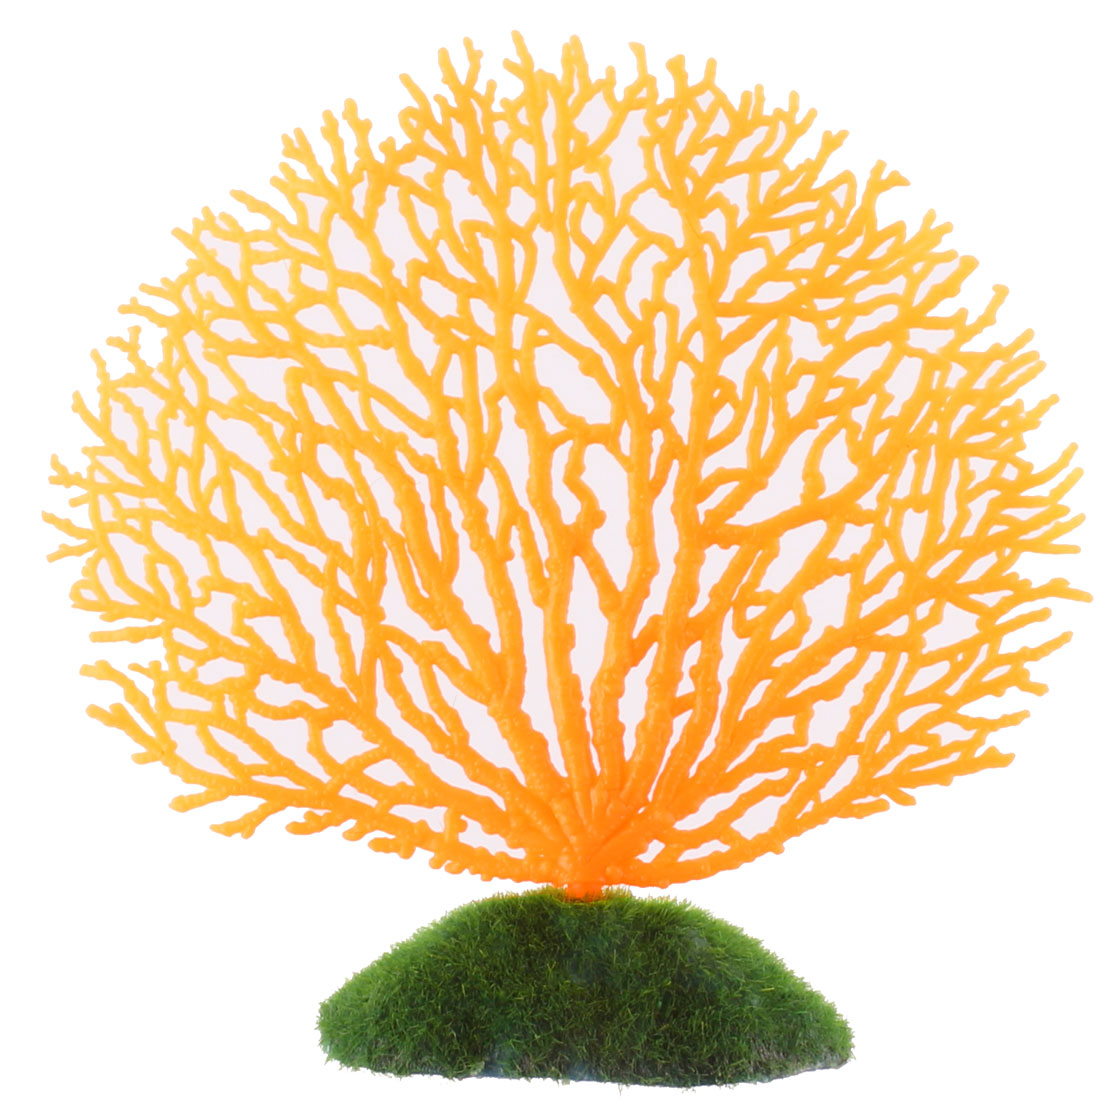 Tree Shaped Manmade Underwater Sea Plant Landscaping Aquarium Coral Ornament